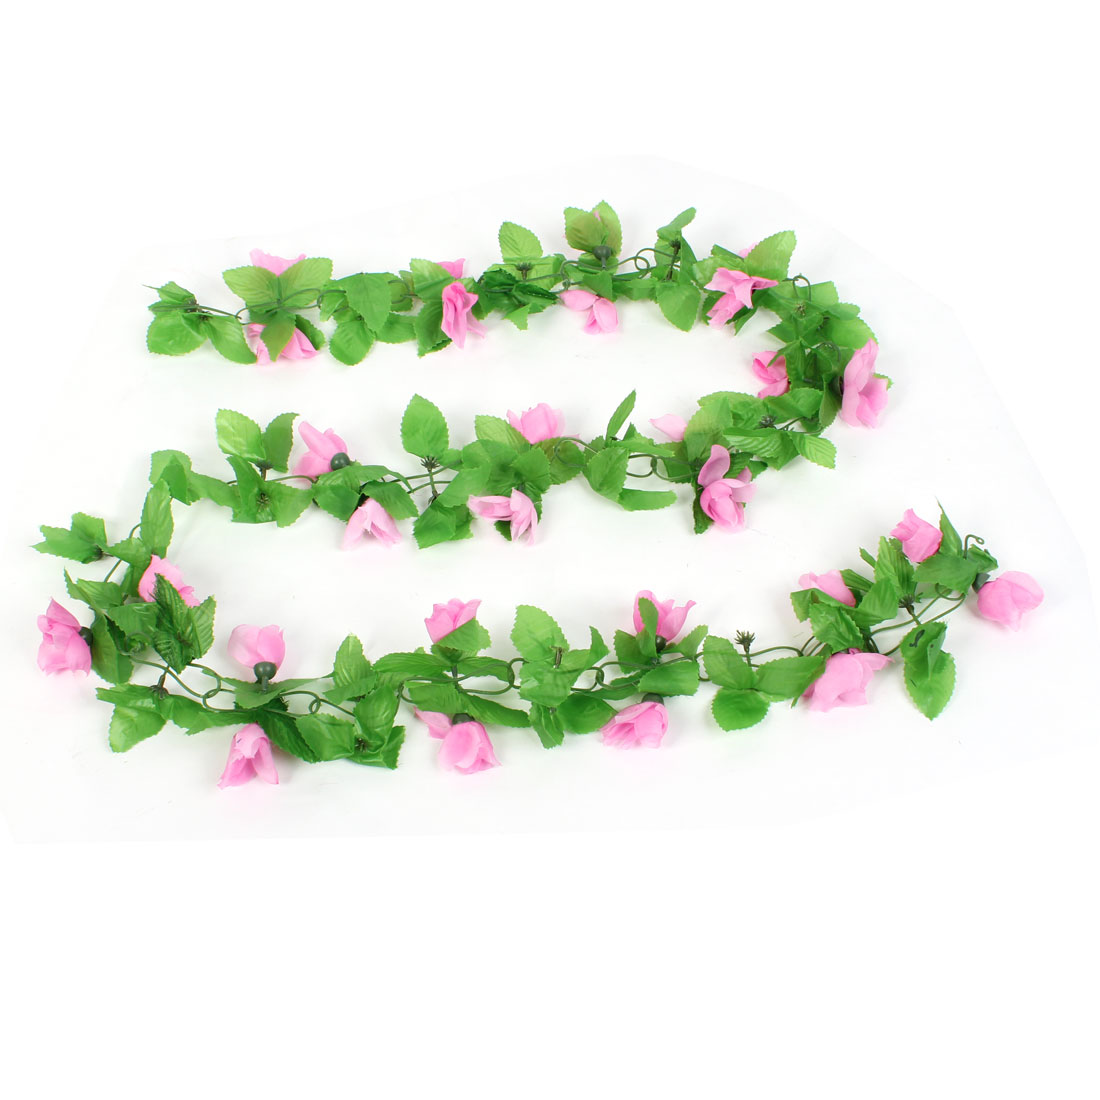 1.8M Long Green Plastic Leaves Pink Flower Wall Hanging Plant Vine